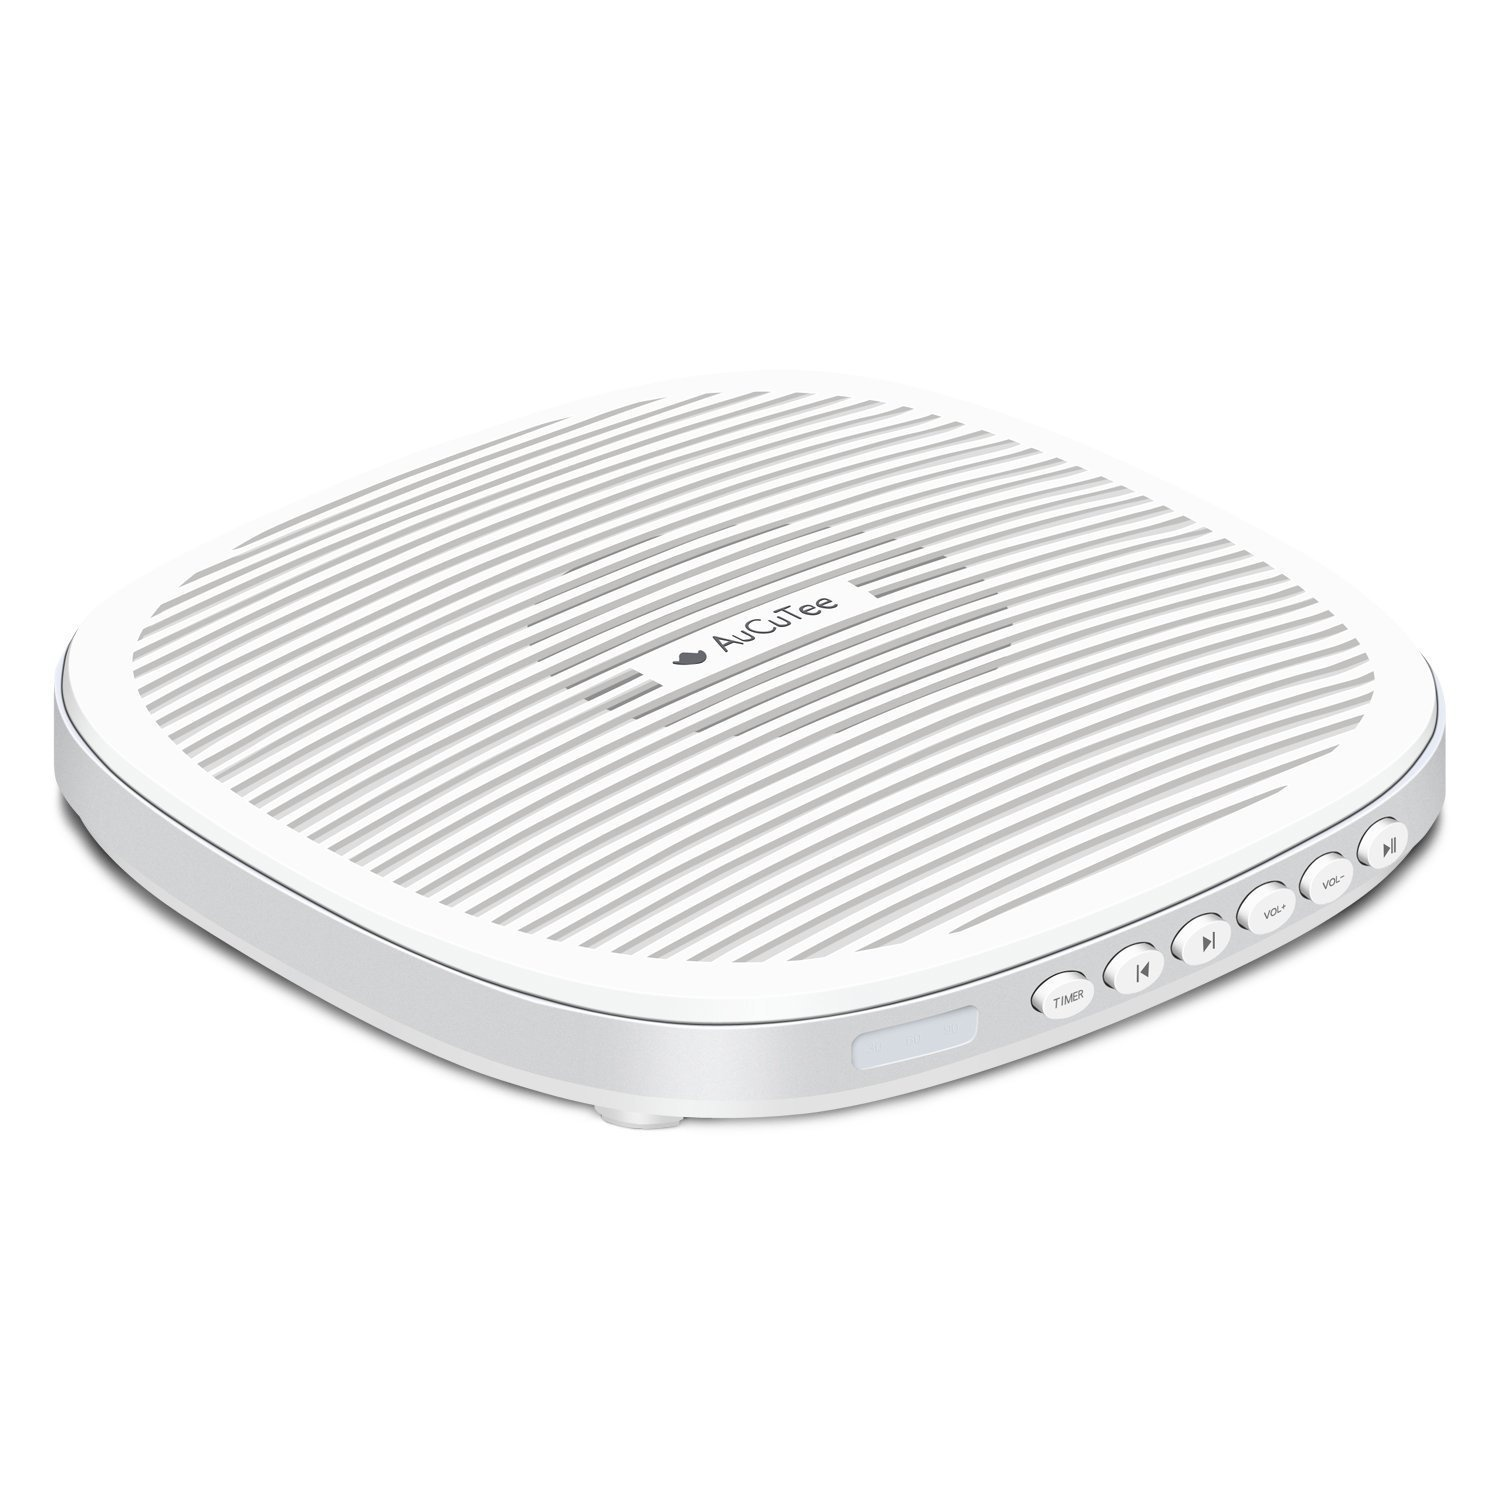 AuCuTee Portable Sound Machine,Upgraded With Memory Function